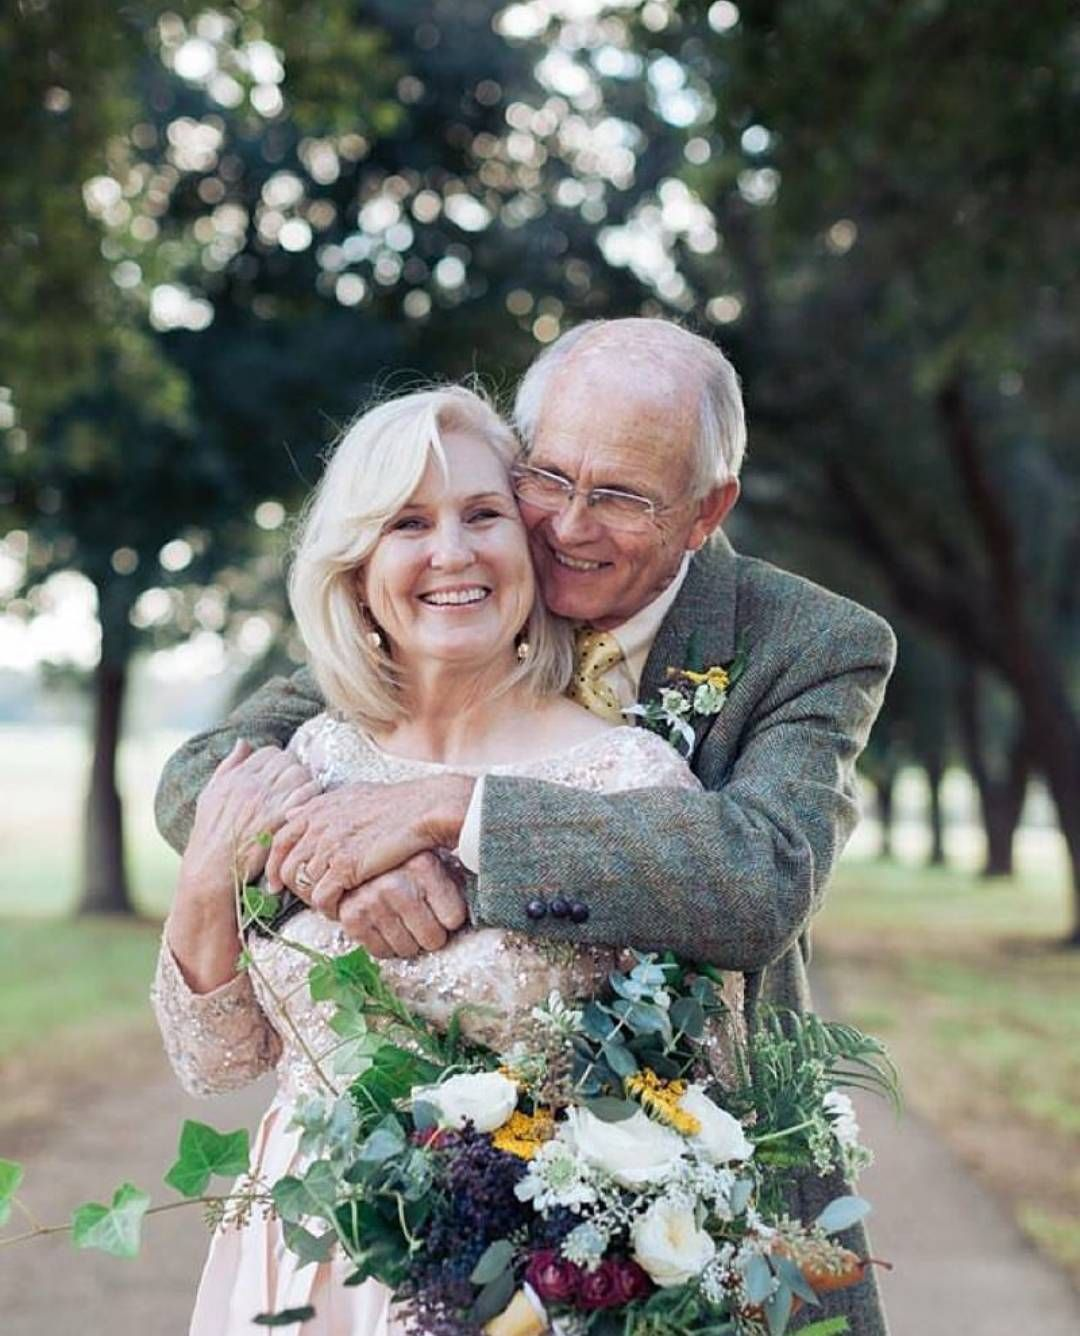 Relationship goal! This lovely couple has been married for 50 years and we still can see their love and affection to each other radiates throughout this photo by @photographybymicahlawilson! Isn't it the loveliest to see this happy couple together? Hands up if you want to grow old together with your loved one like this lovebirds too!  Photography @photographybymicahlawilson / Floral Design by Botanical Occasions by Leanne Graves / Cake Styling @georgiegirlcakery / Hair & Makeup by Caitlin…